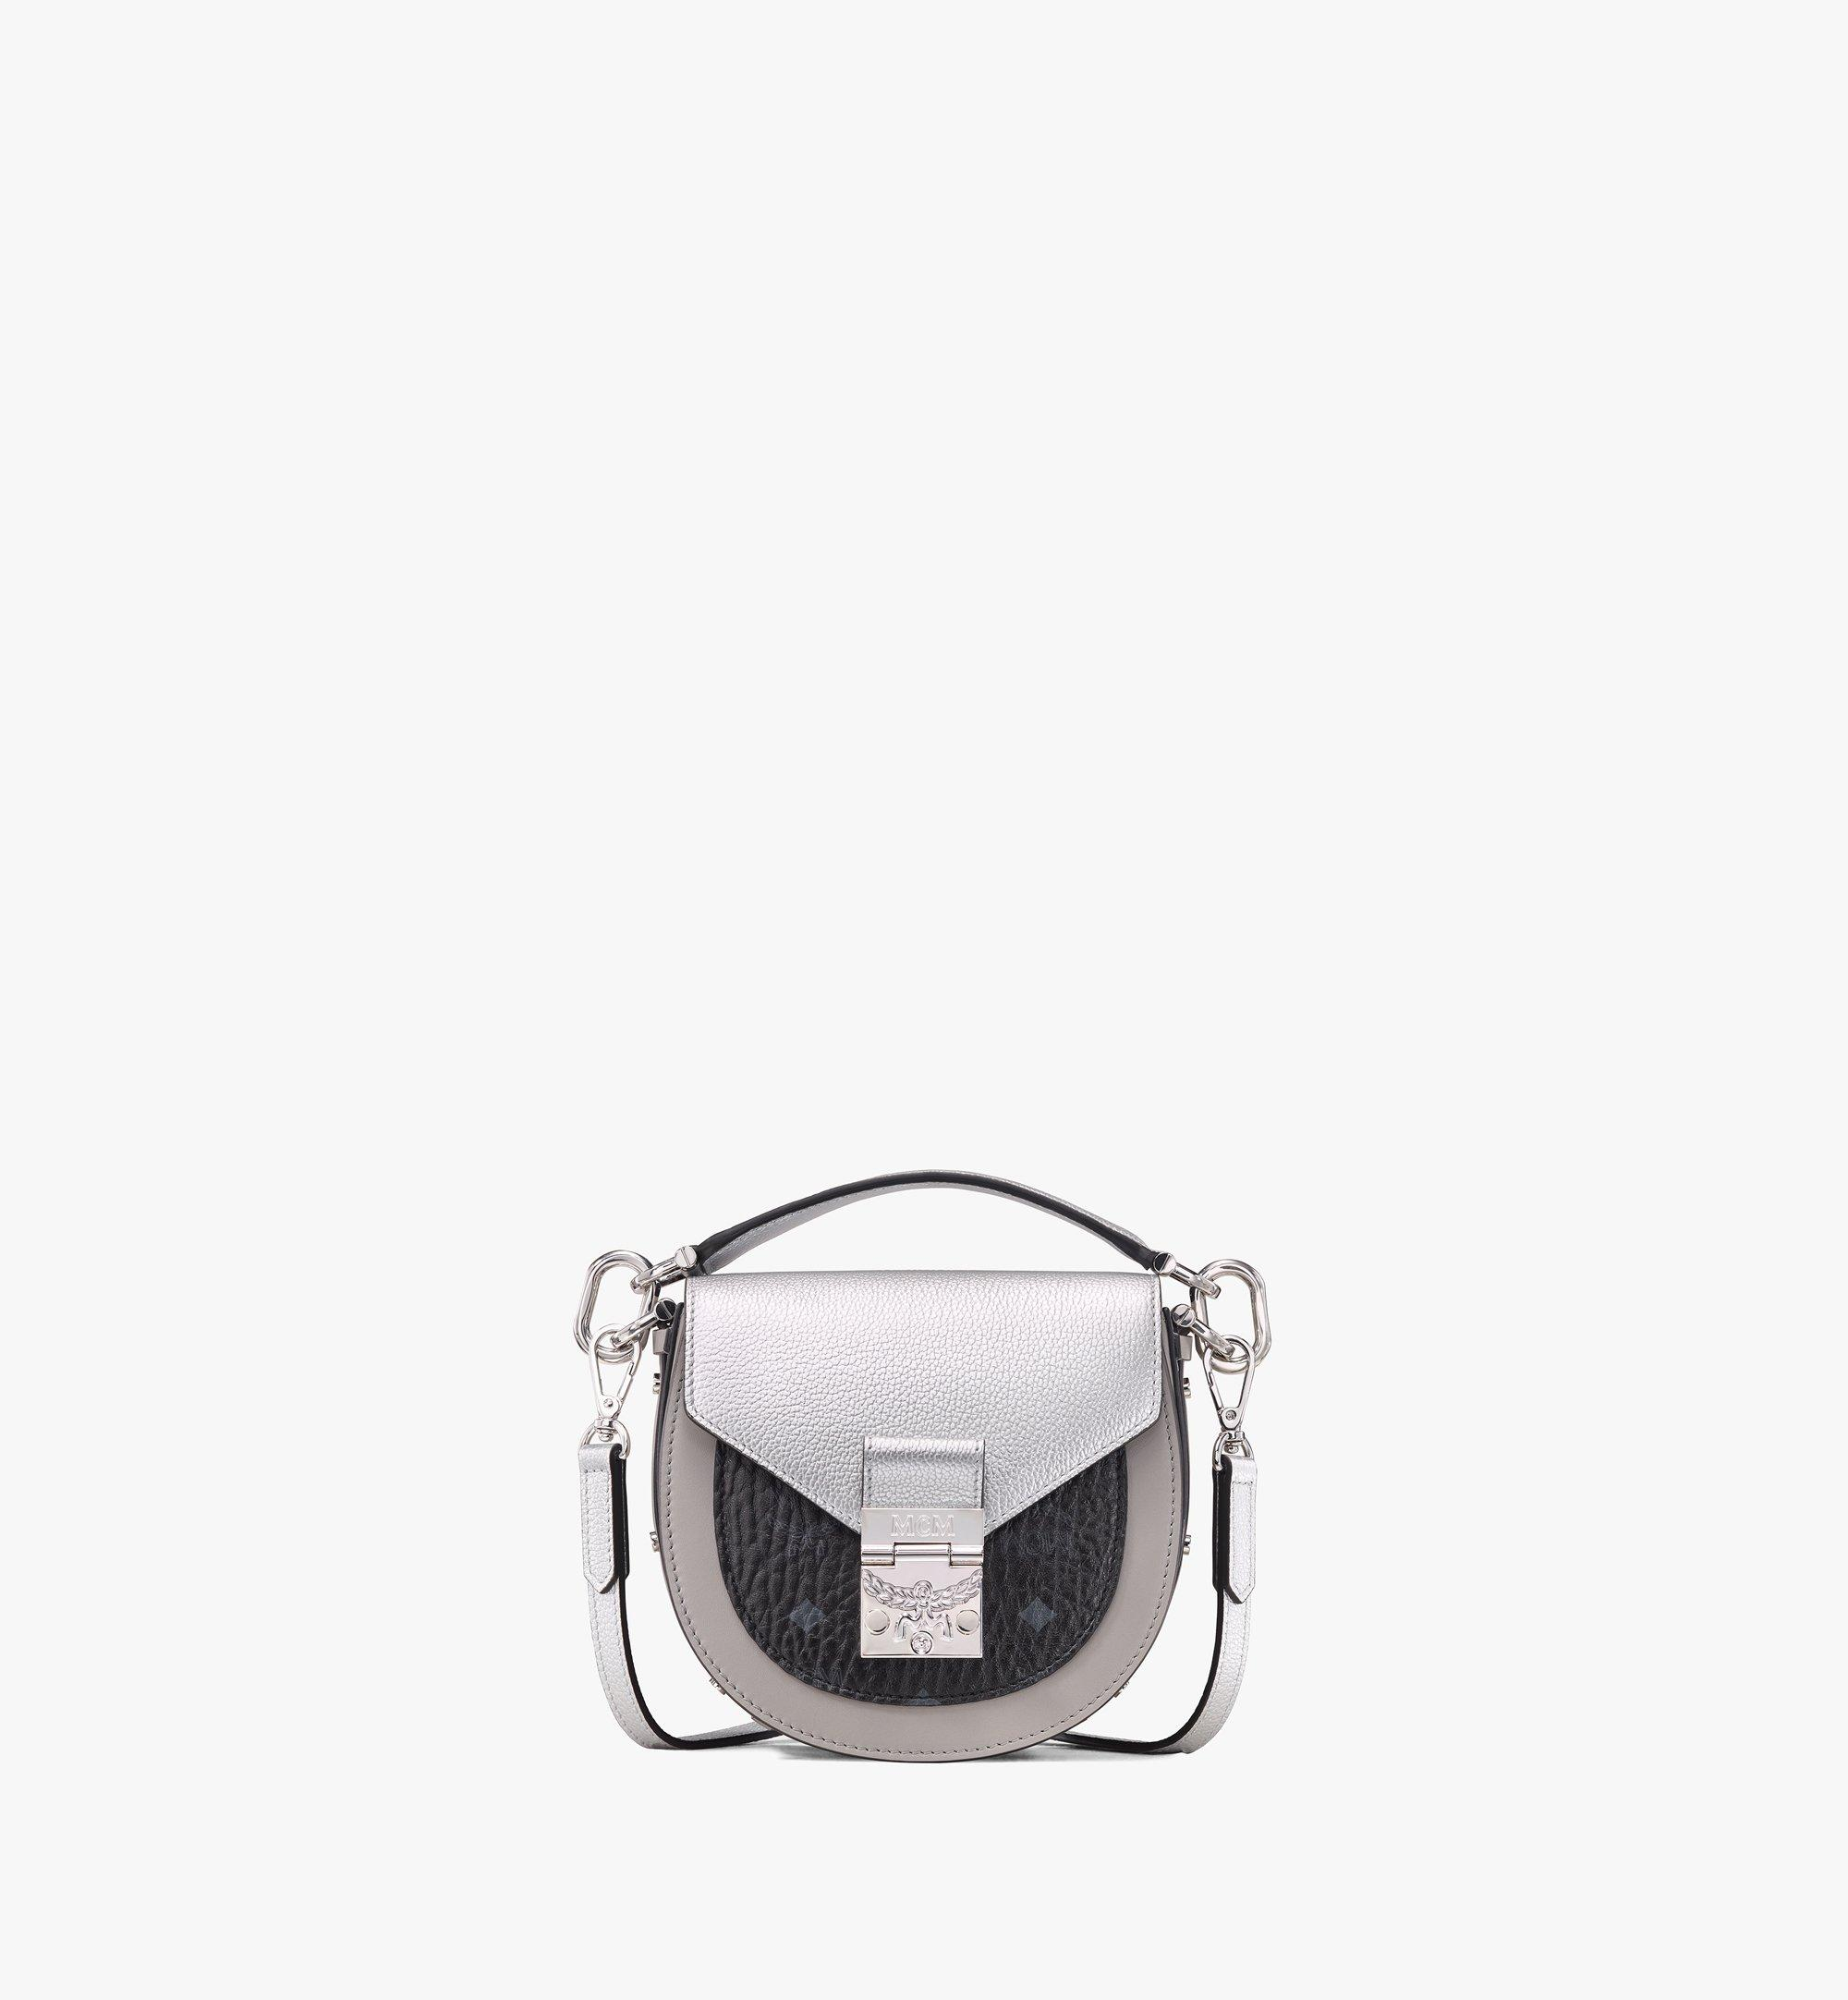 MCM Patricia Shoulder Bag in Color Block Visetos Silver MWSASPA13SE001 Alternate View 1